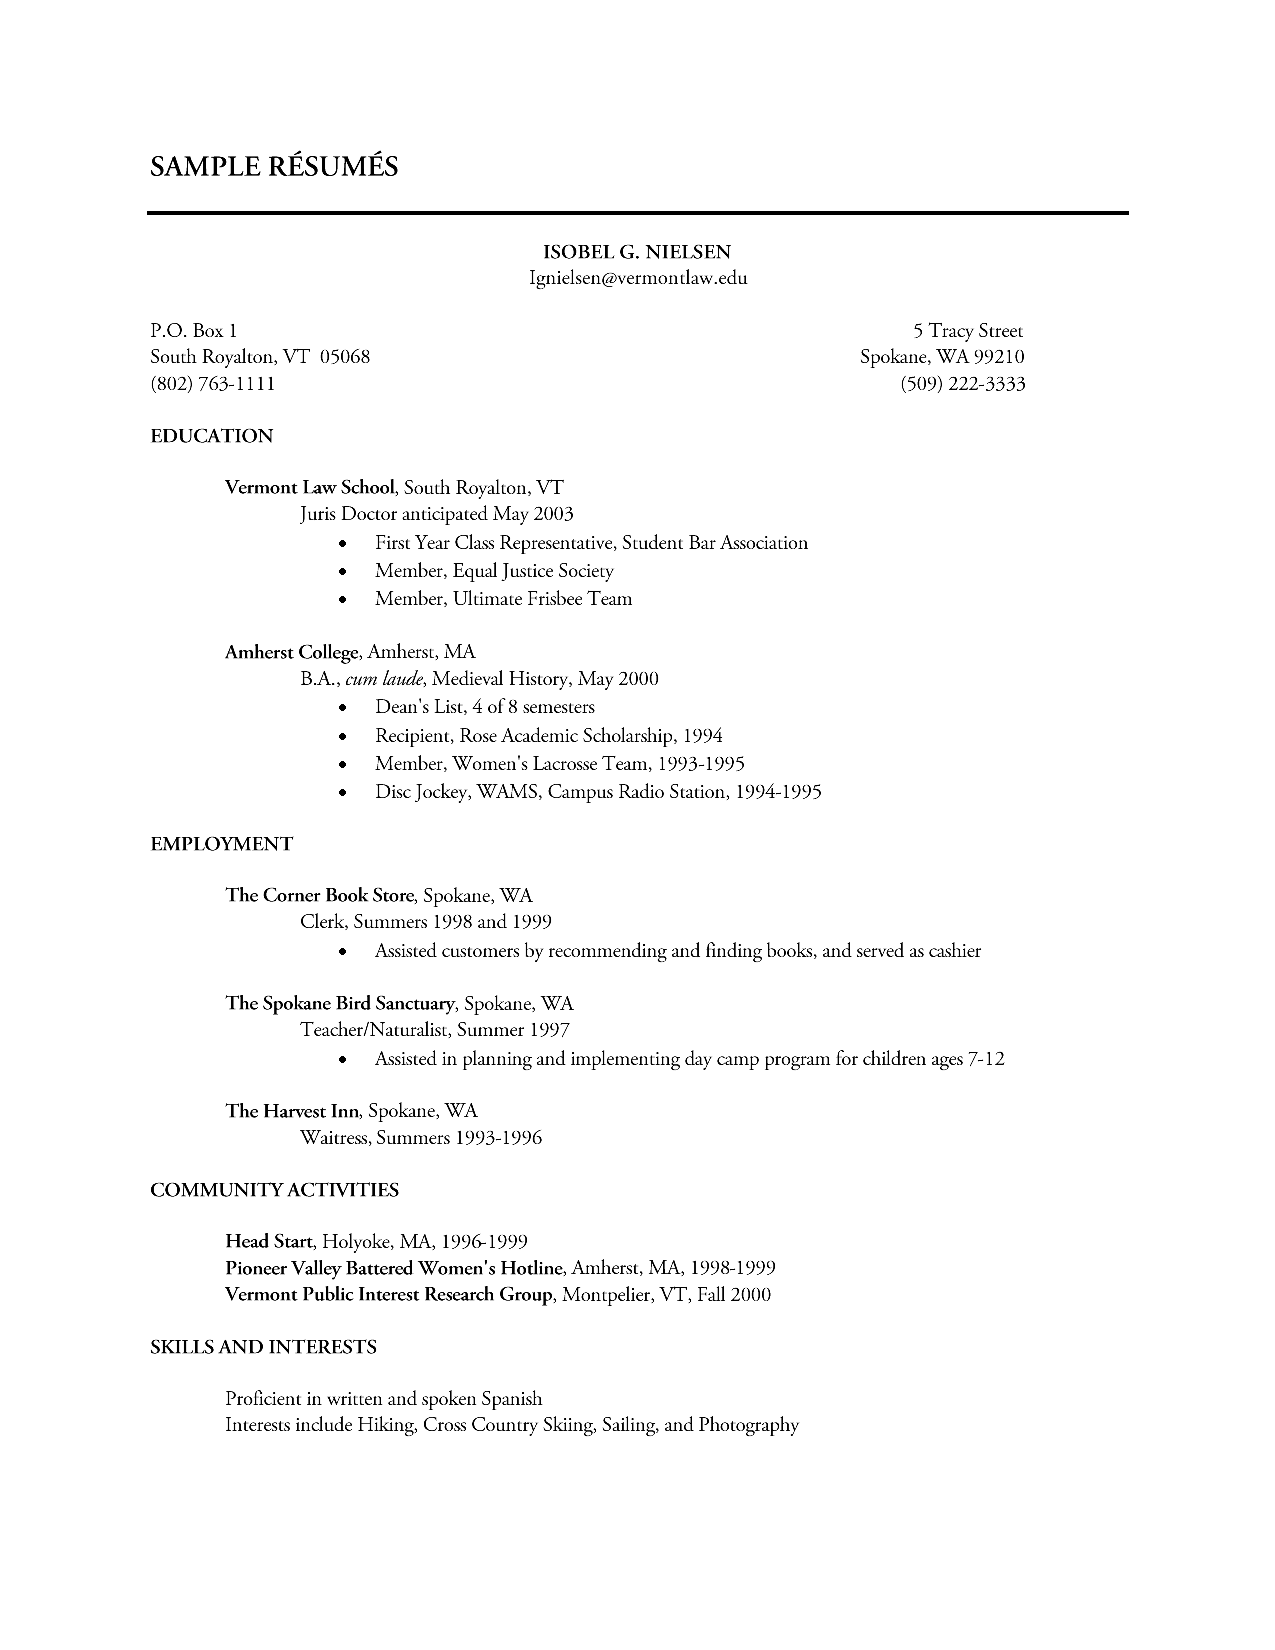 Sample Resume Showing Volunteer Work | Resume Sample Volunteer Ngo  Volunteer Experience Resume